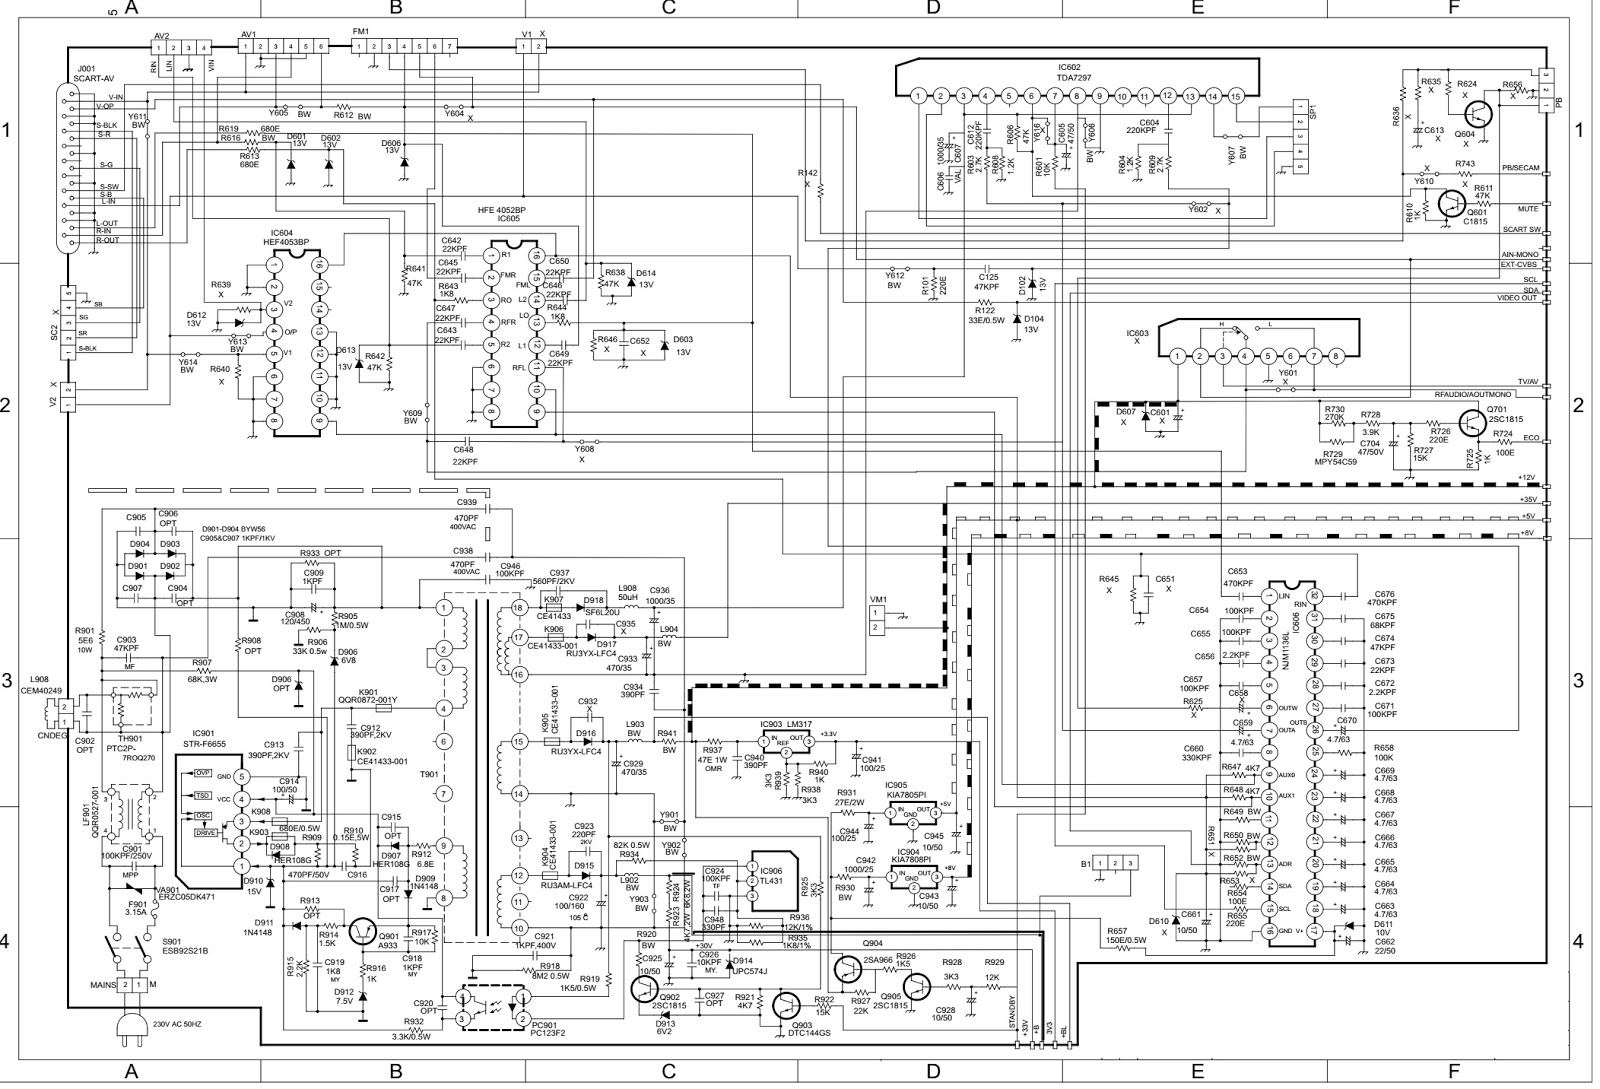 Sanyo Tv Circuit Diagram - List of Wiring Diagrams on